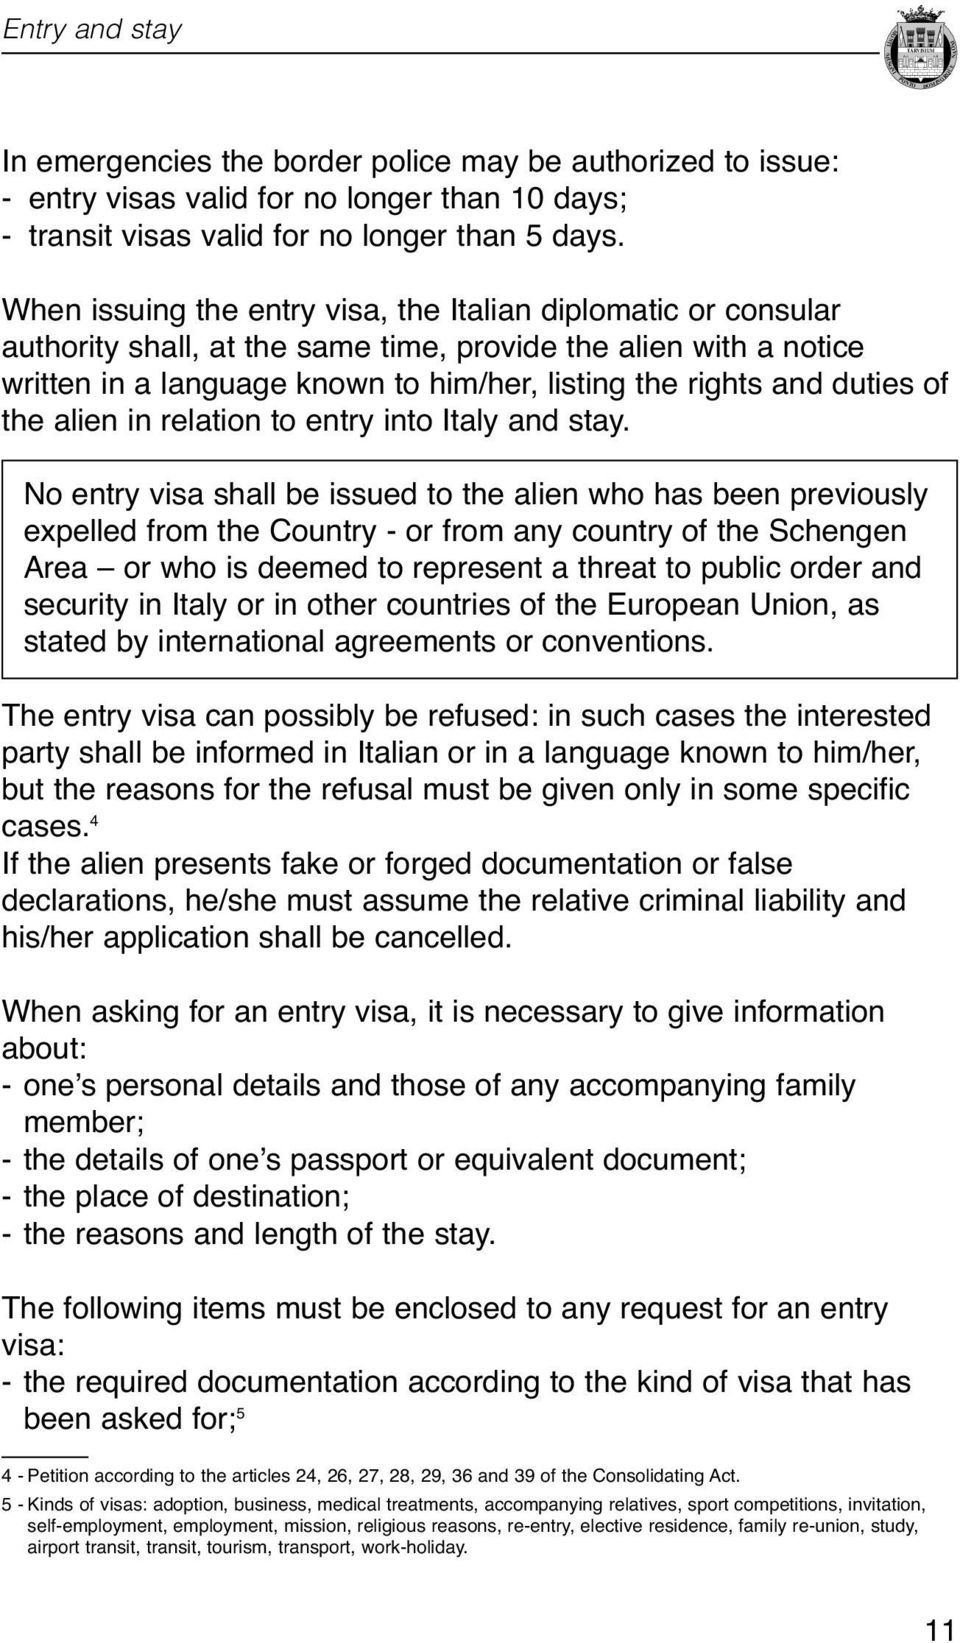 relation to entry into Italy and stay No entry visa shall be issued to the alien who has been previously expelled from the Country - or from any country of the Schengen Area or who is deemed to